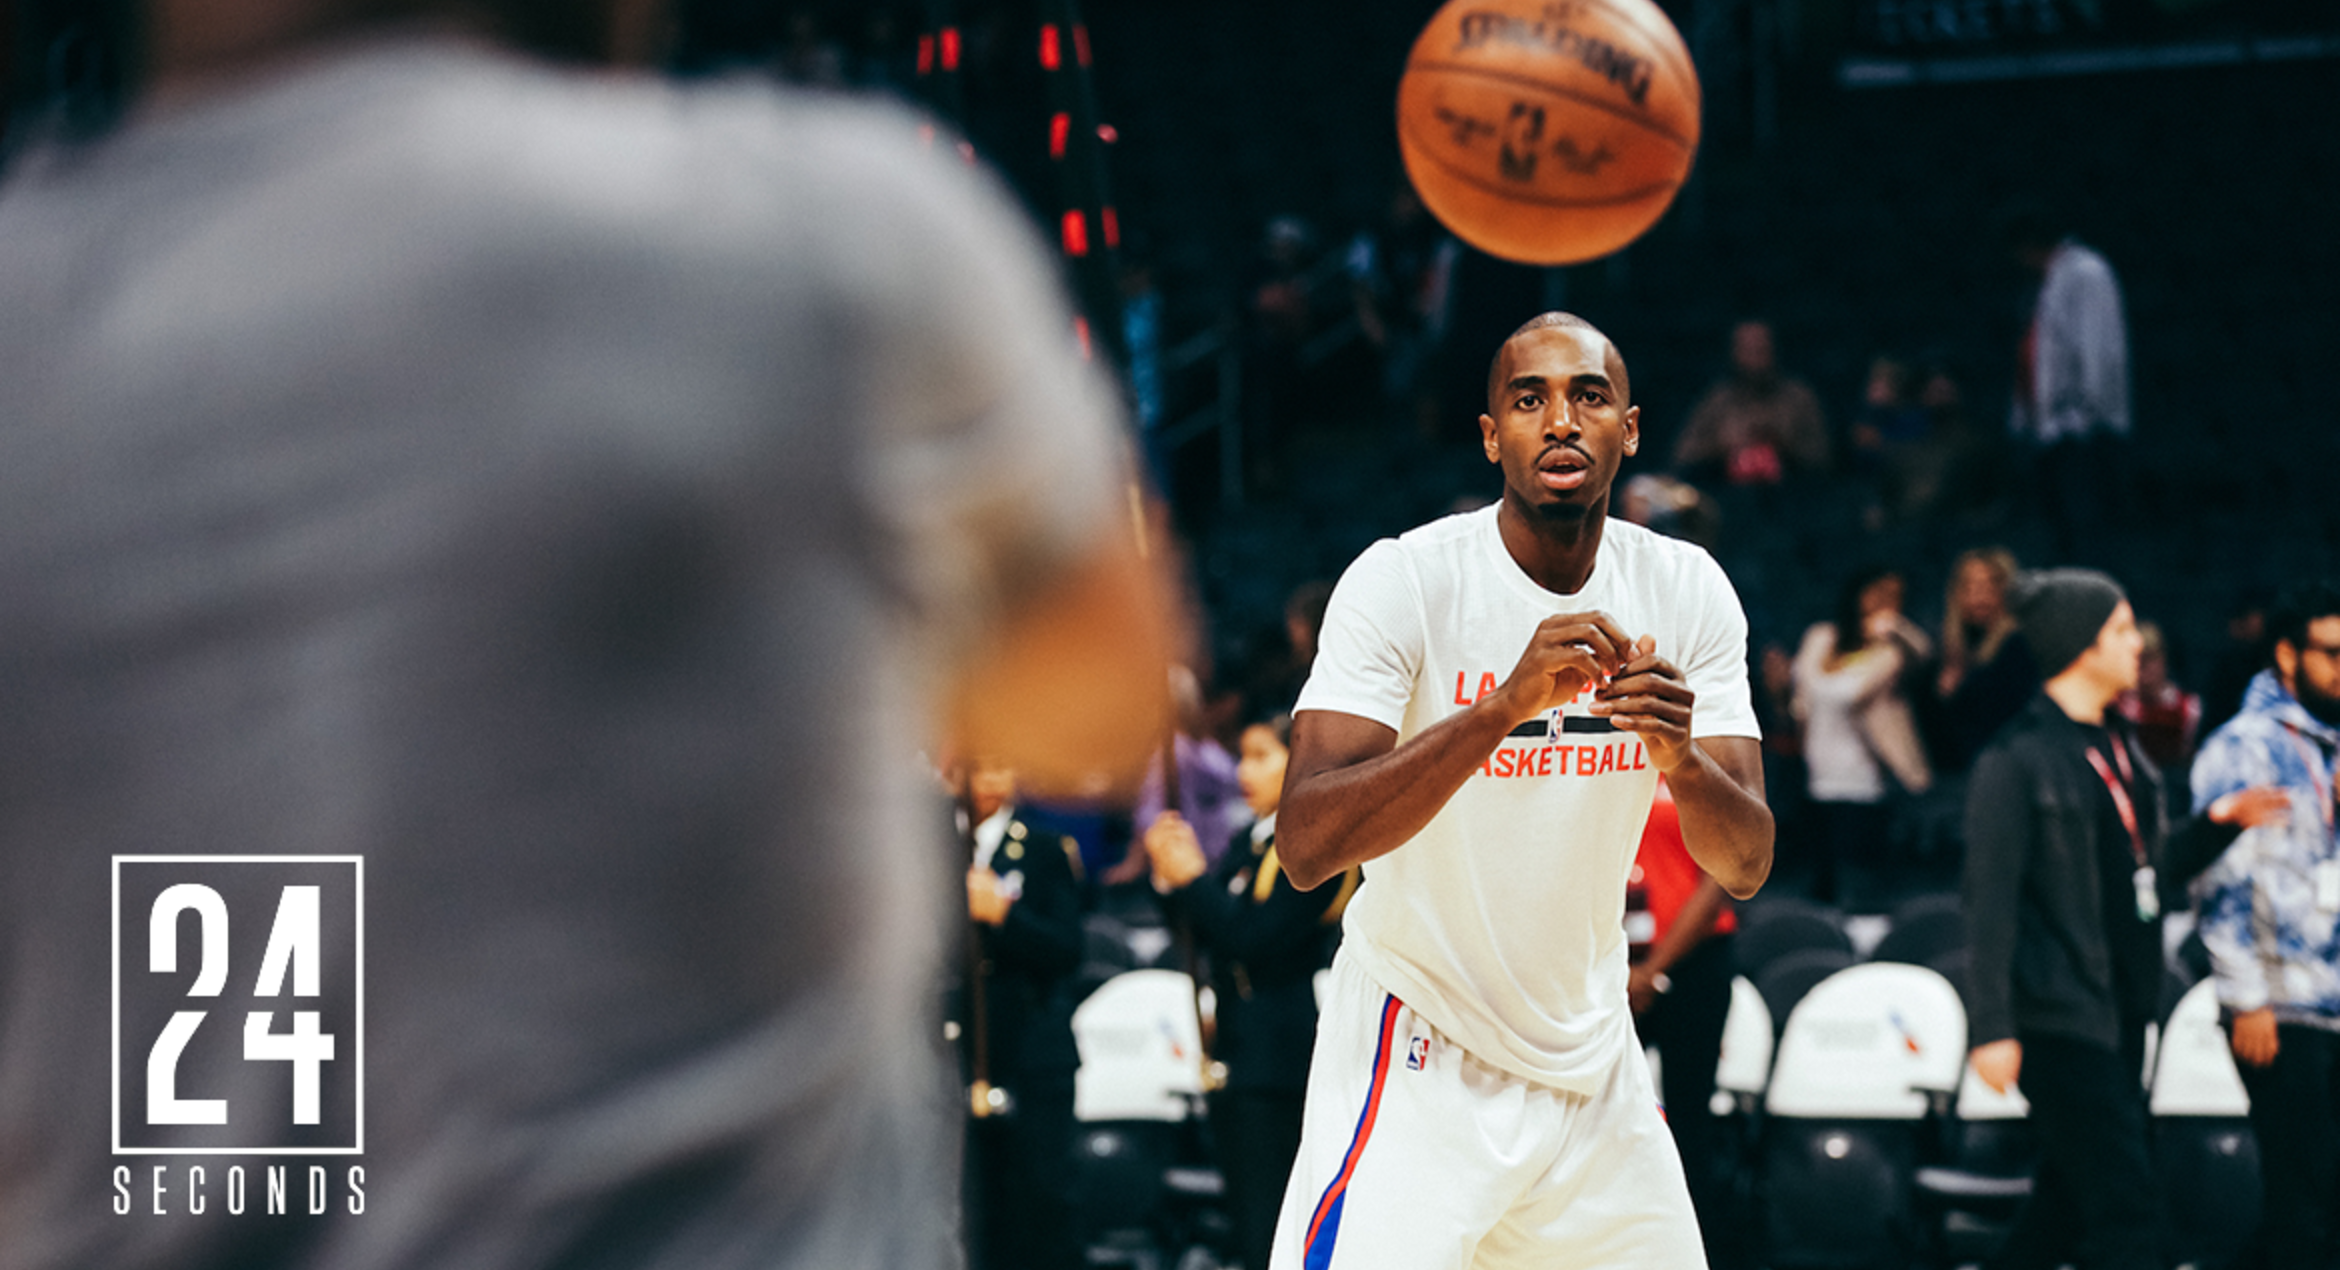 24 Seconds With Luc Mbah a Moute: Cameroon's Win